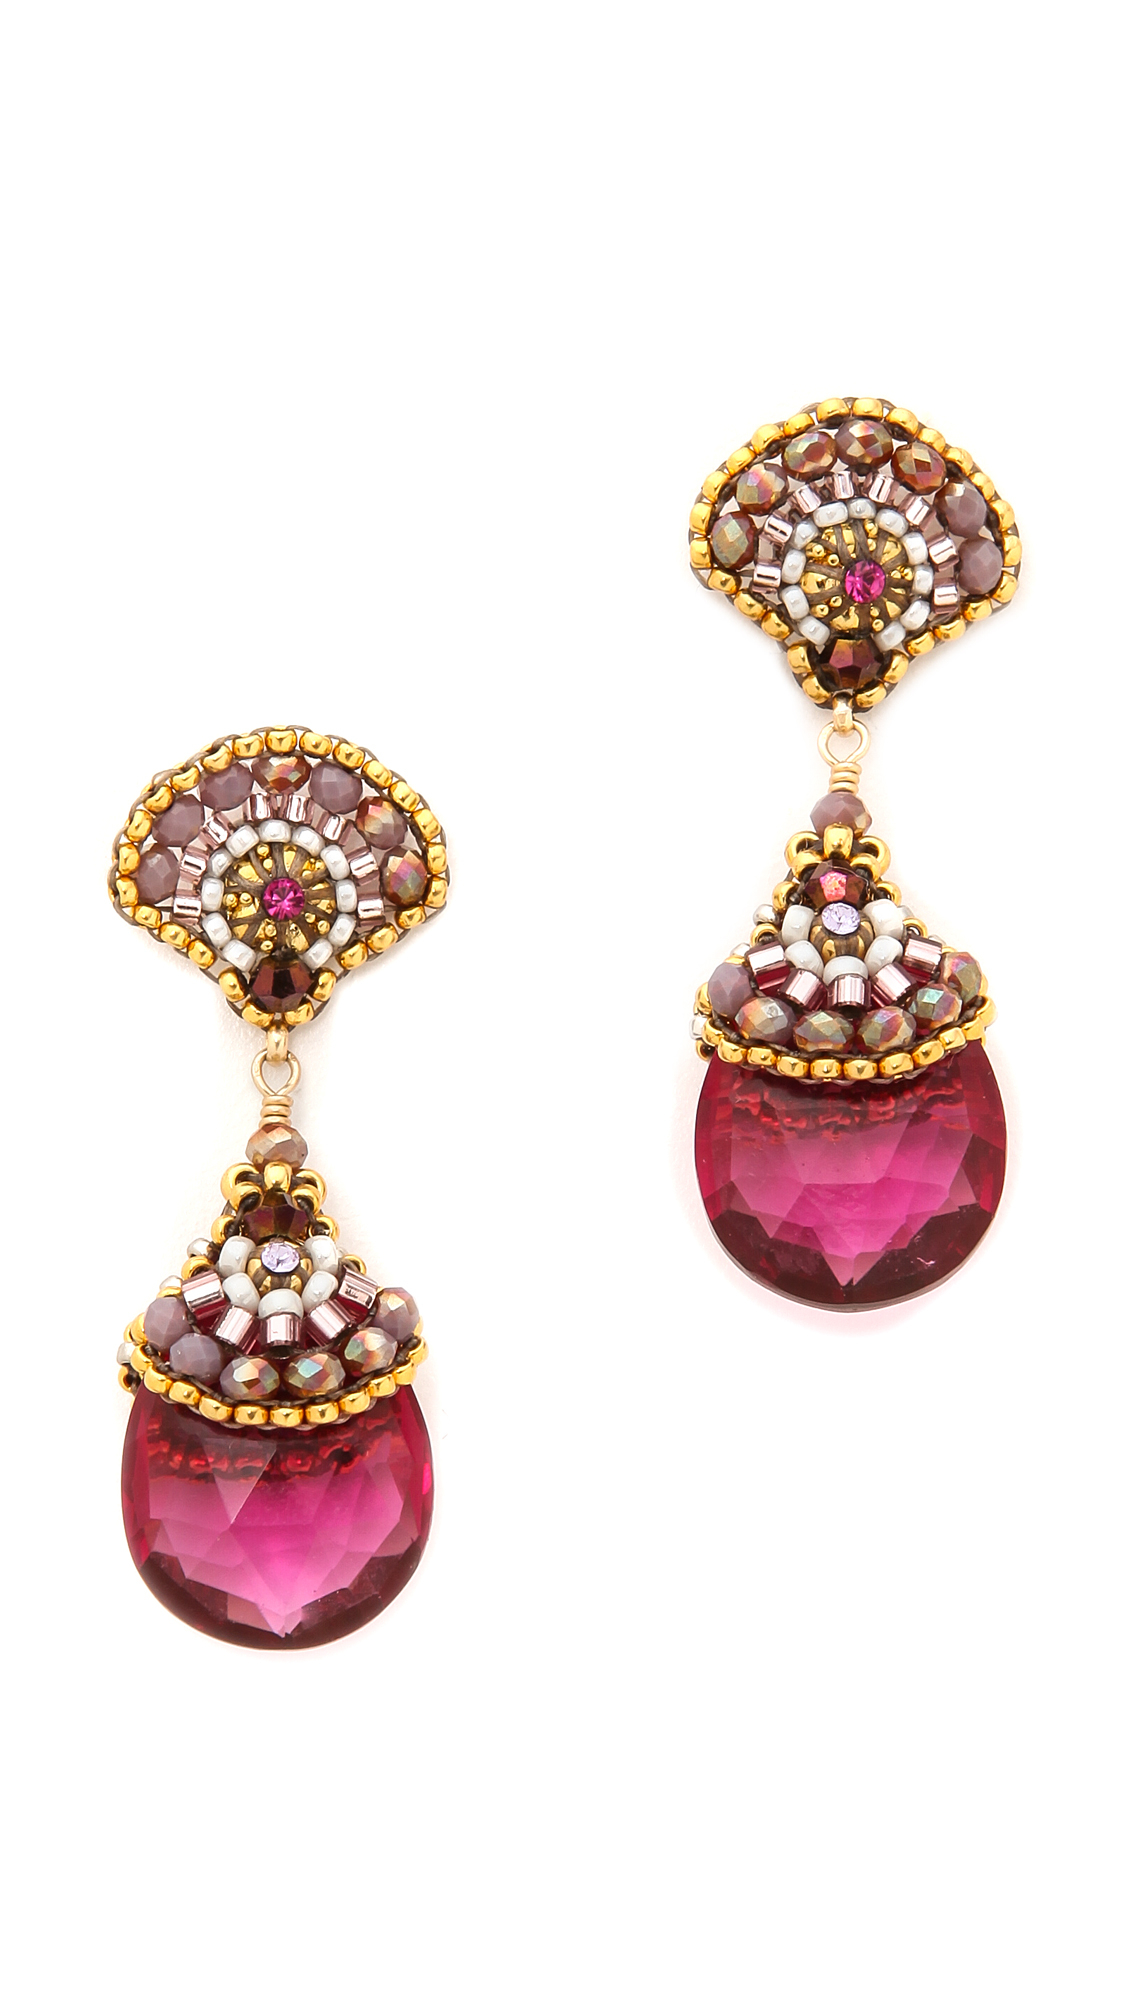 Lyst Miguel Ases Scallop Stone Drop Earrings Pink Multi